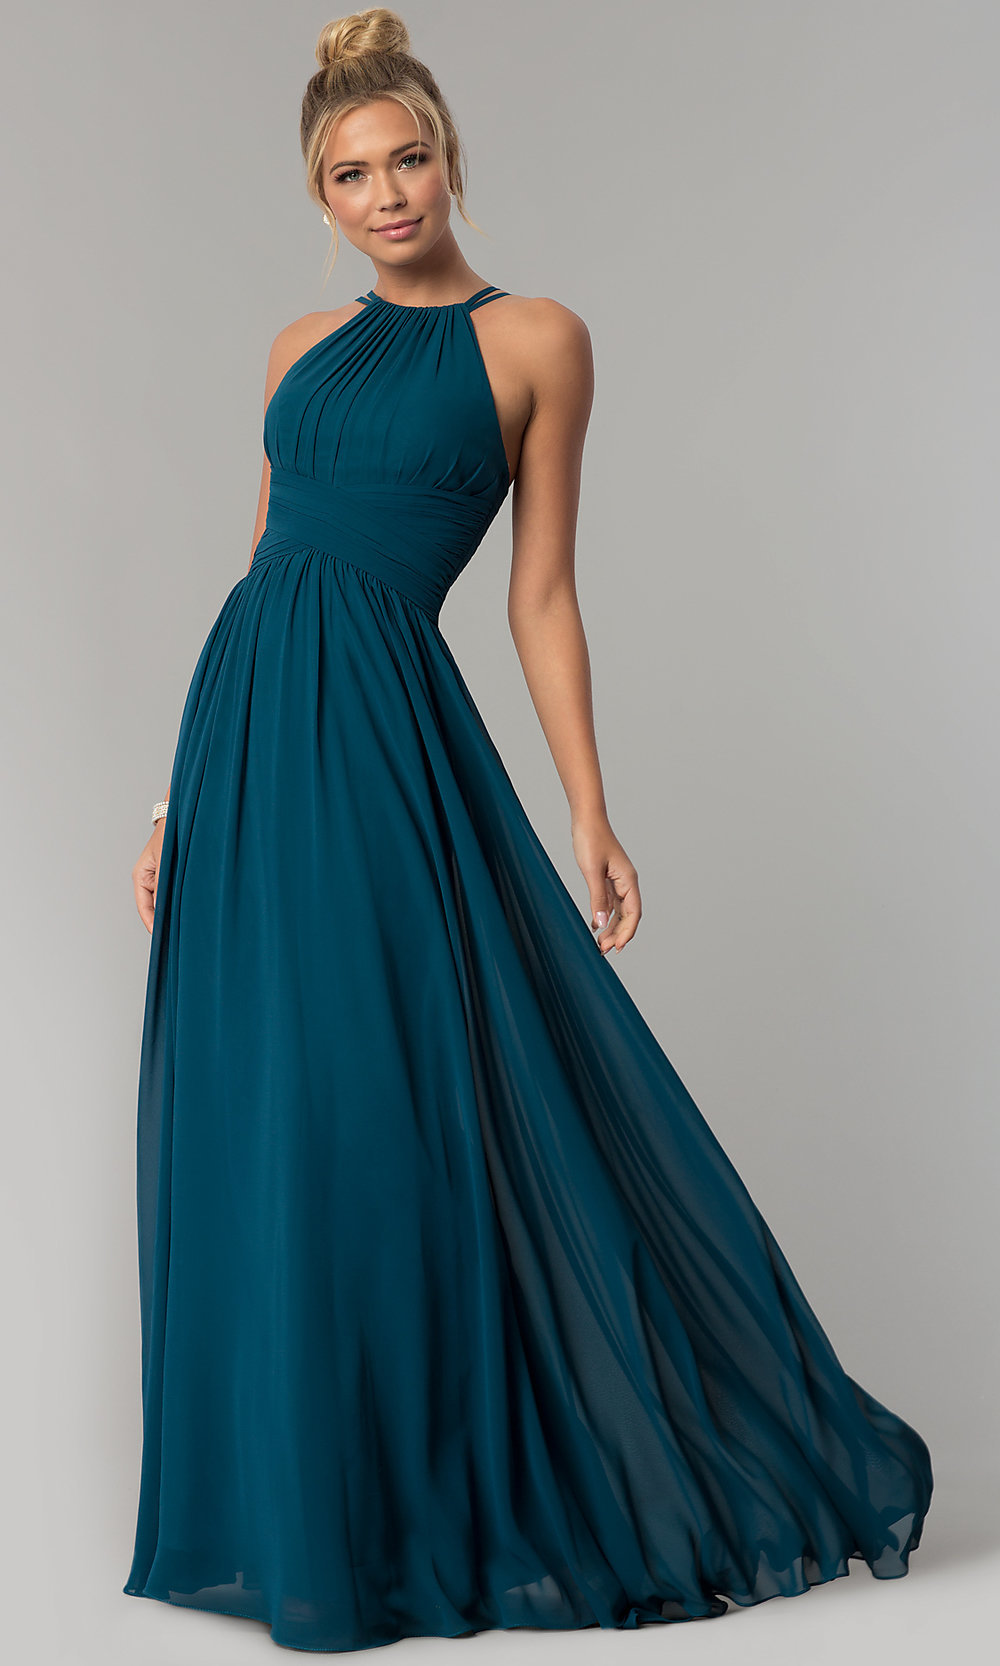 dress prom dresses neck chiffon formal ball military ruched busty teal homecoming bride mother promgirl gowns evening waist halter fb